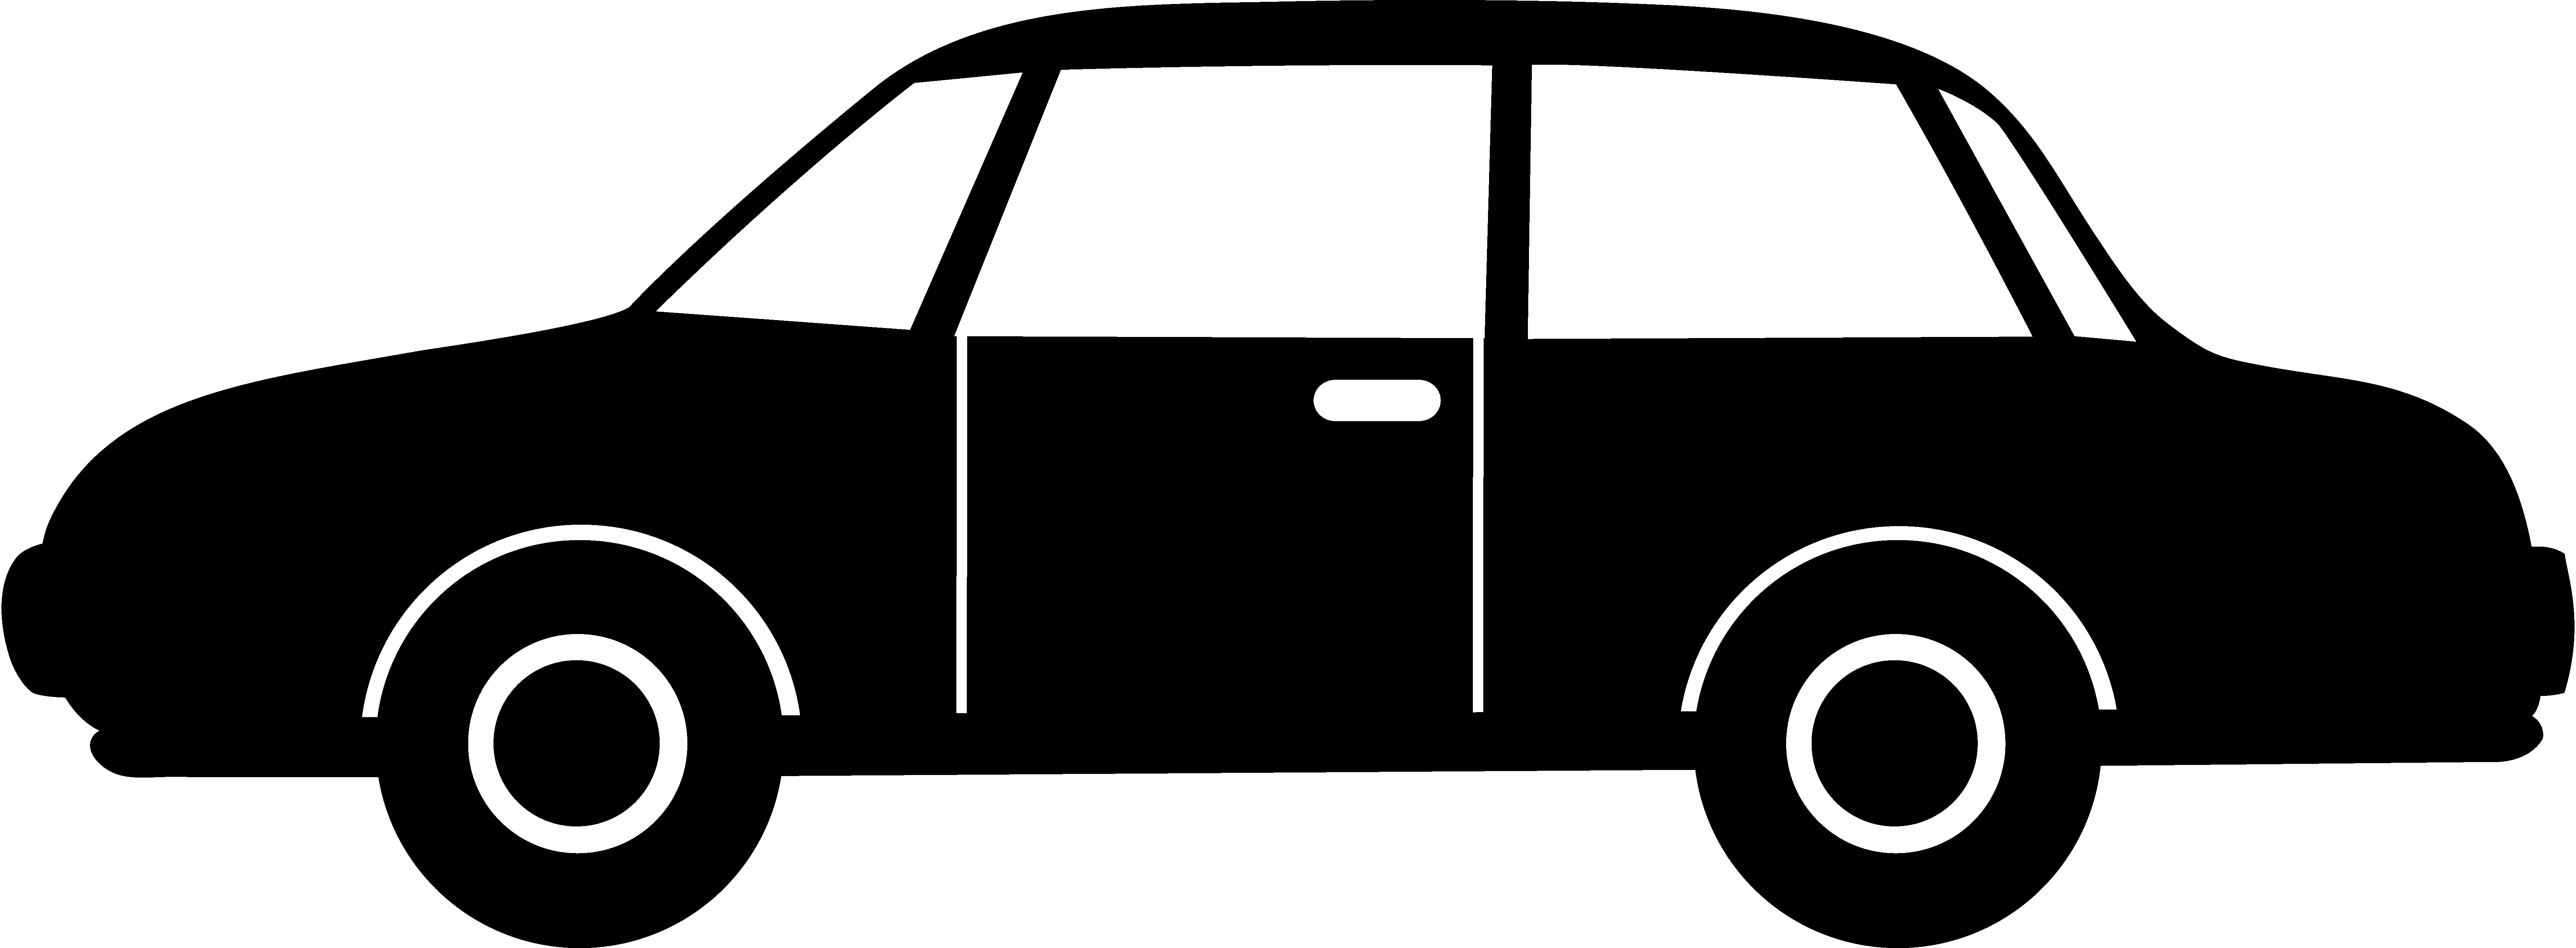 Toy Car Clipart Black And White | Clipart library - Free Clipart Images